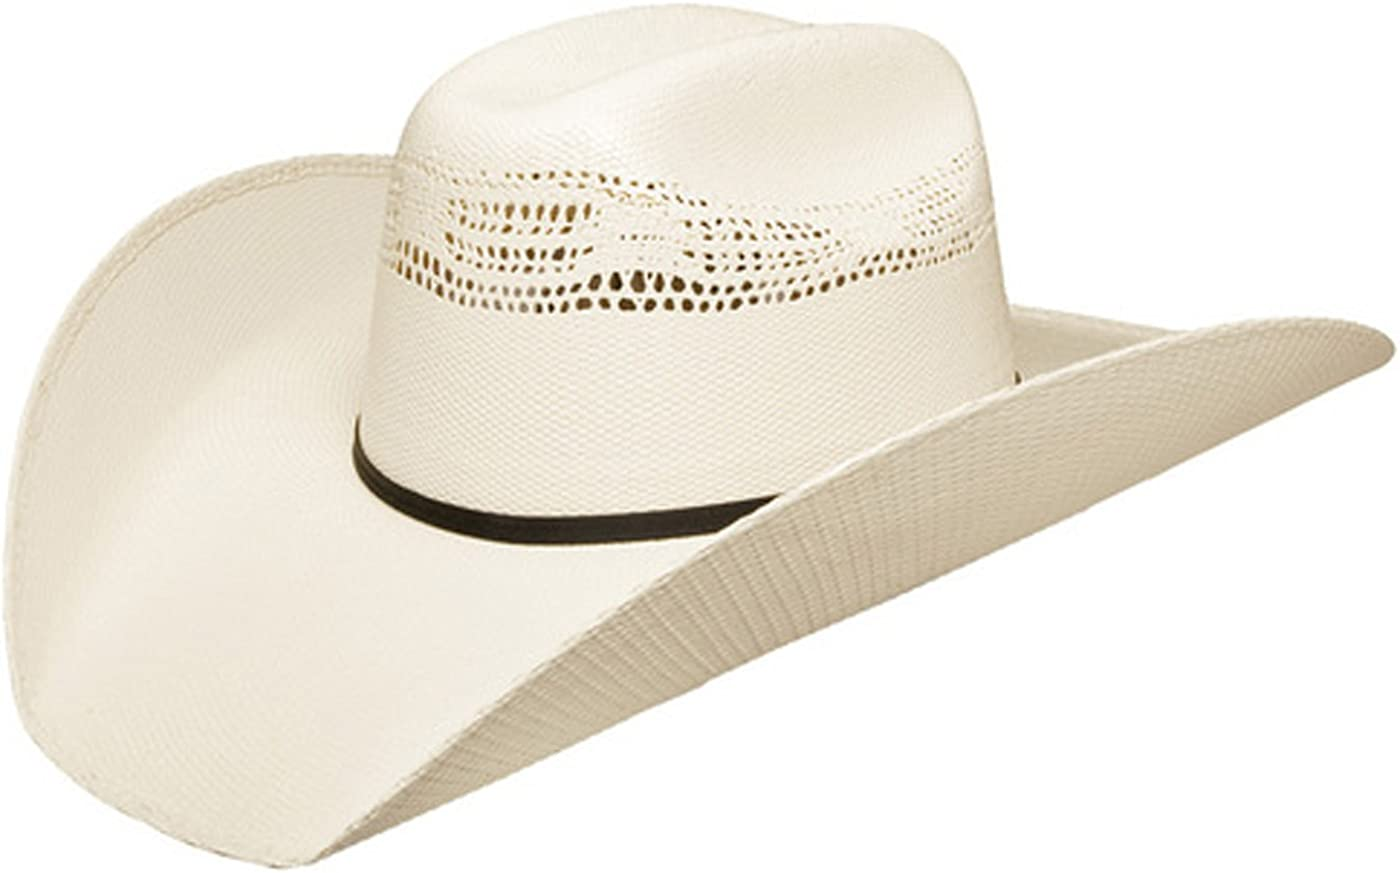 Stetson Mens 7X Ringer Straw Cowboy Hat 6 7/8 Natural at Amazon Men's  Clothing store